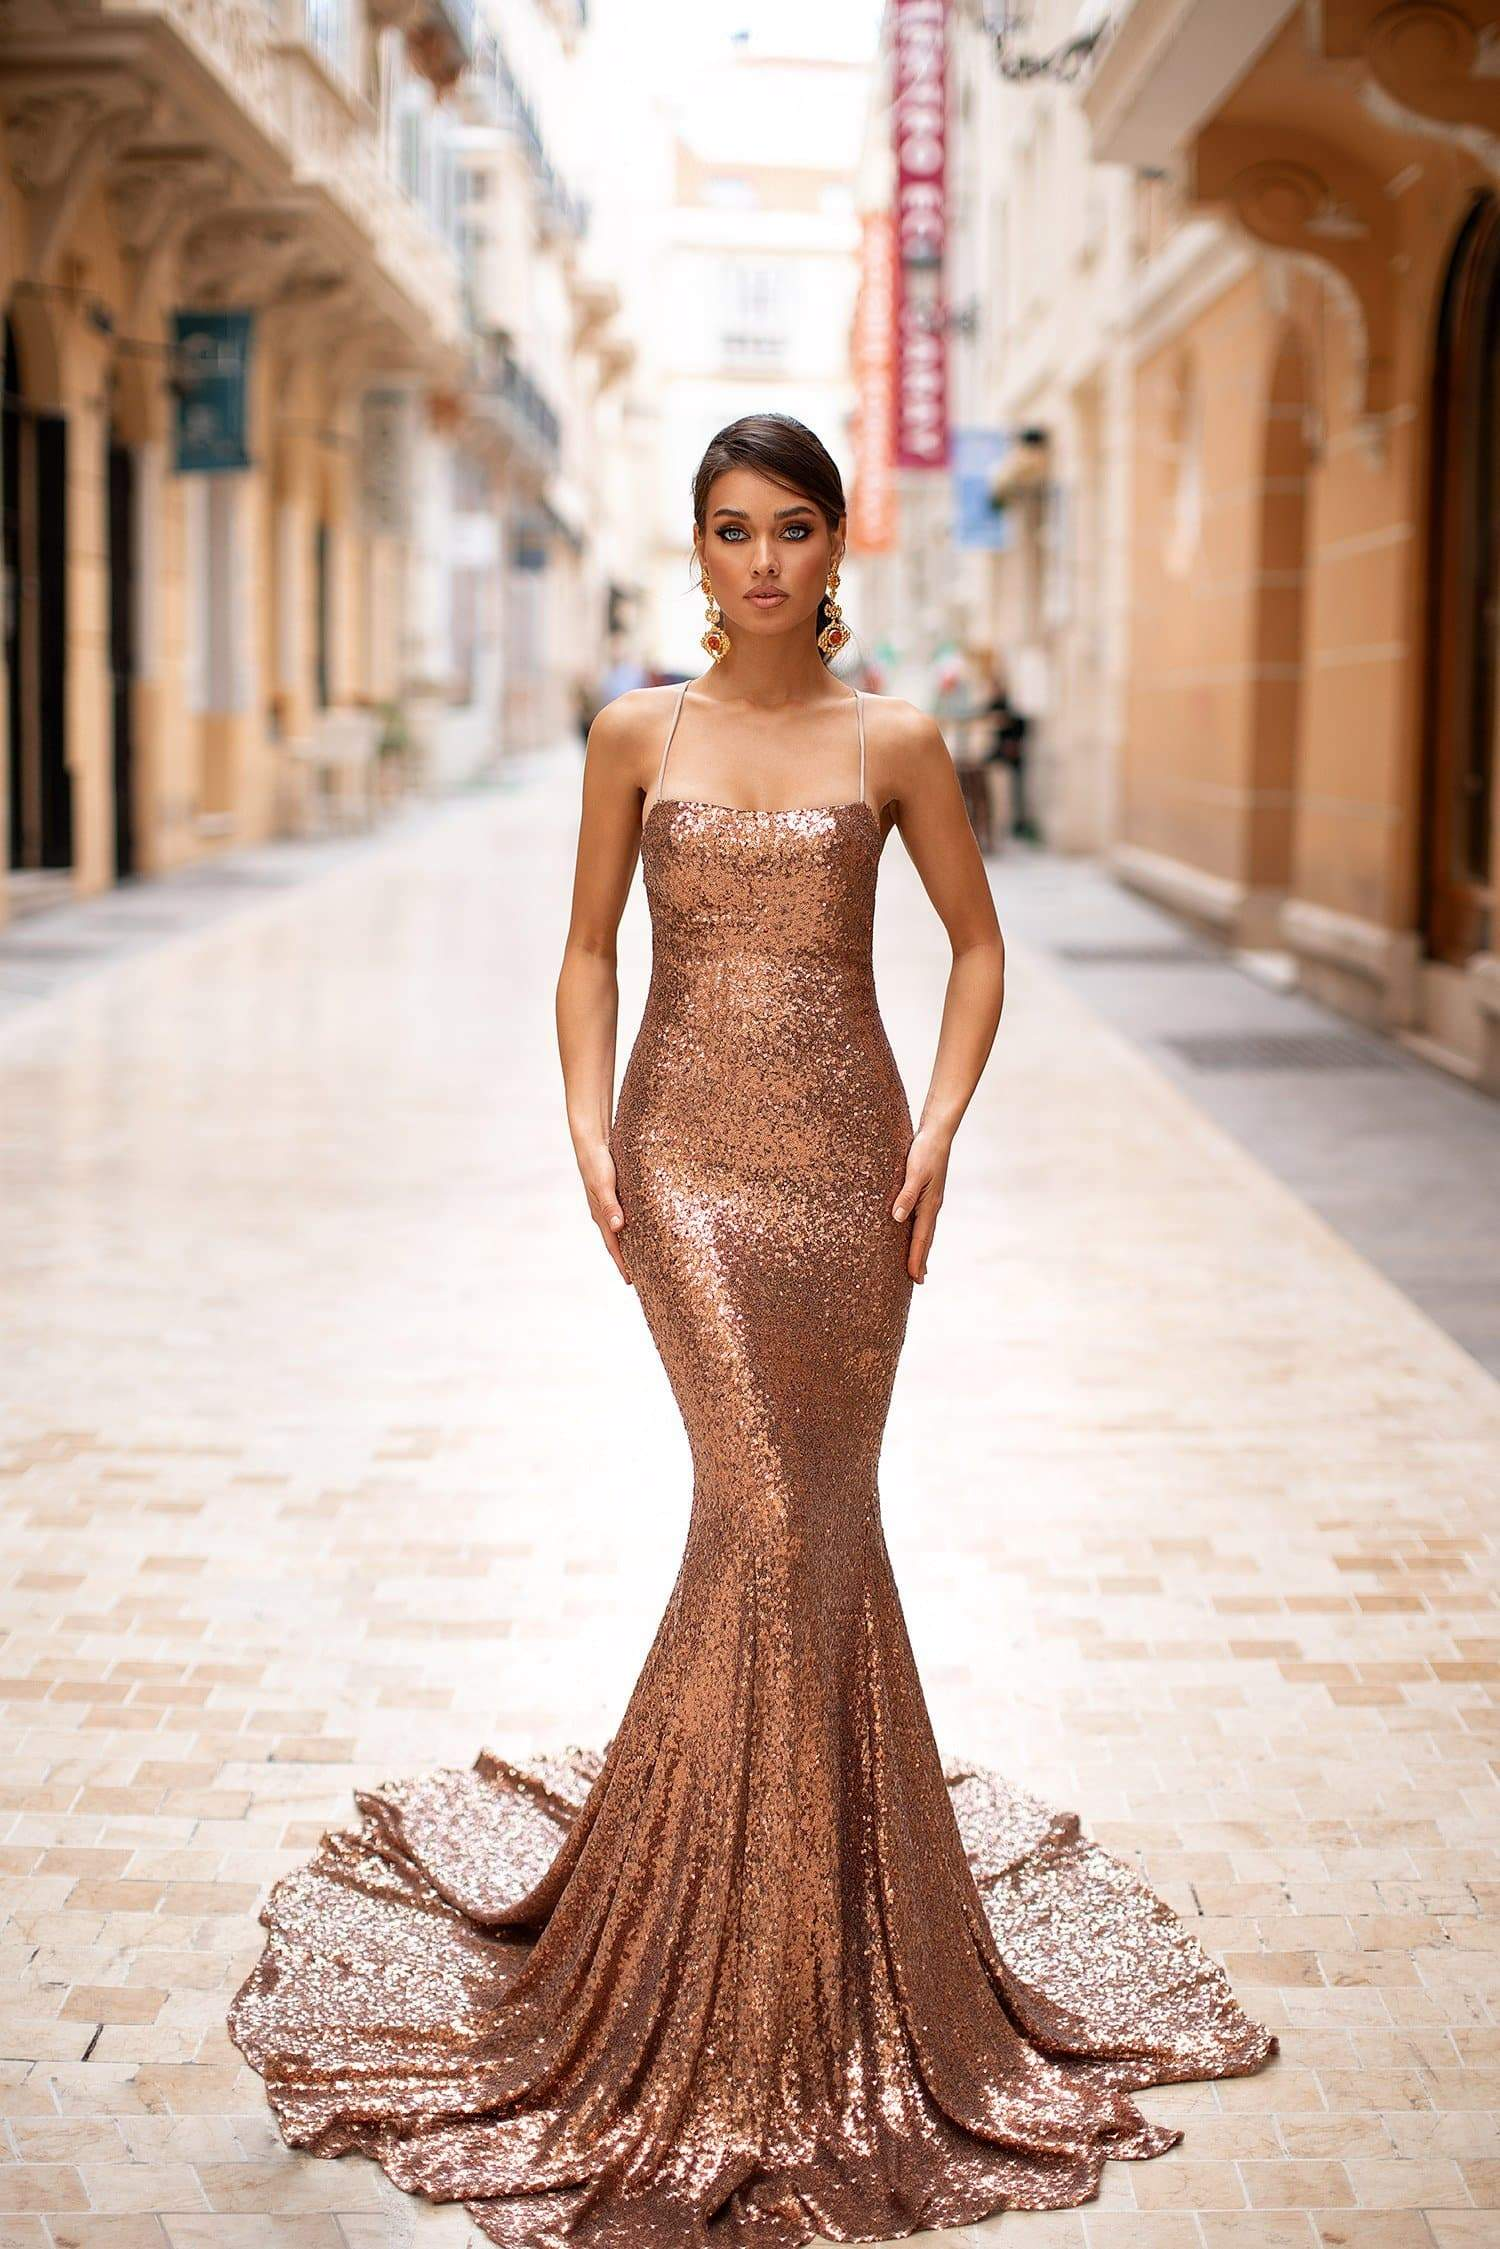 Karmen - Bronze Mermaid Gown with Straight Neckline & Lace-Up Back